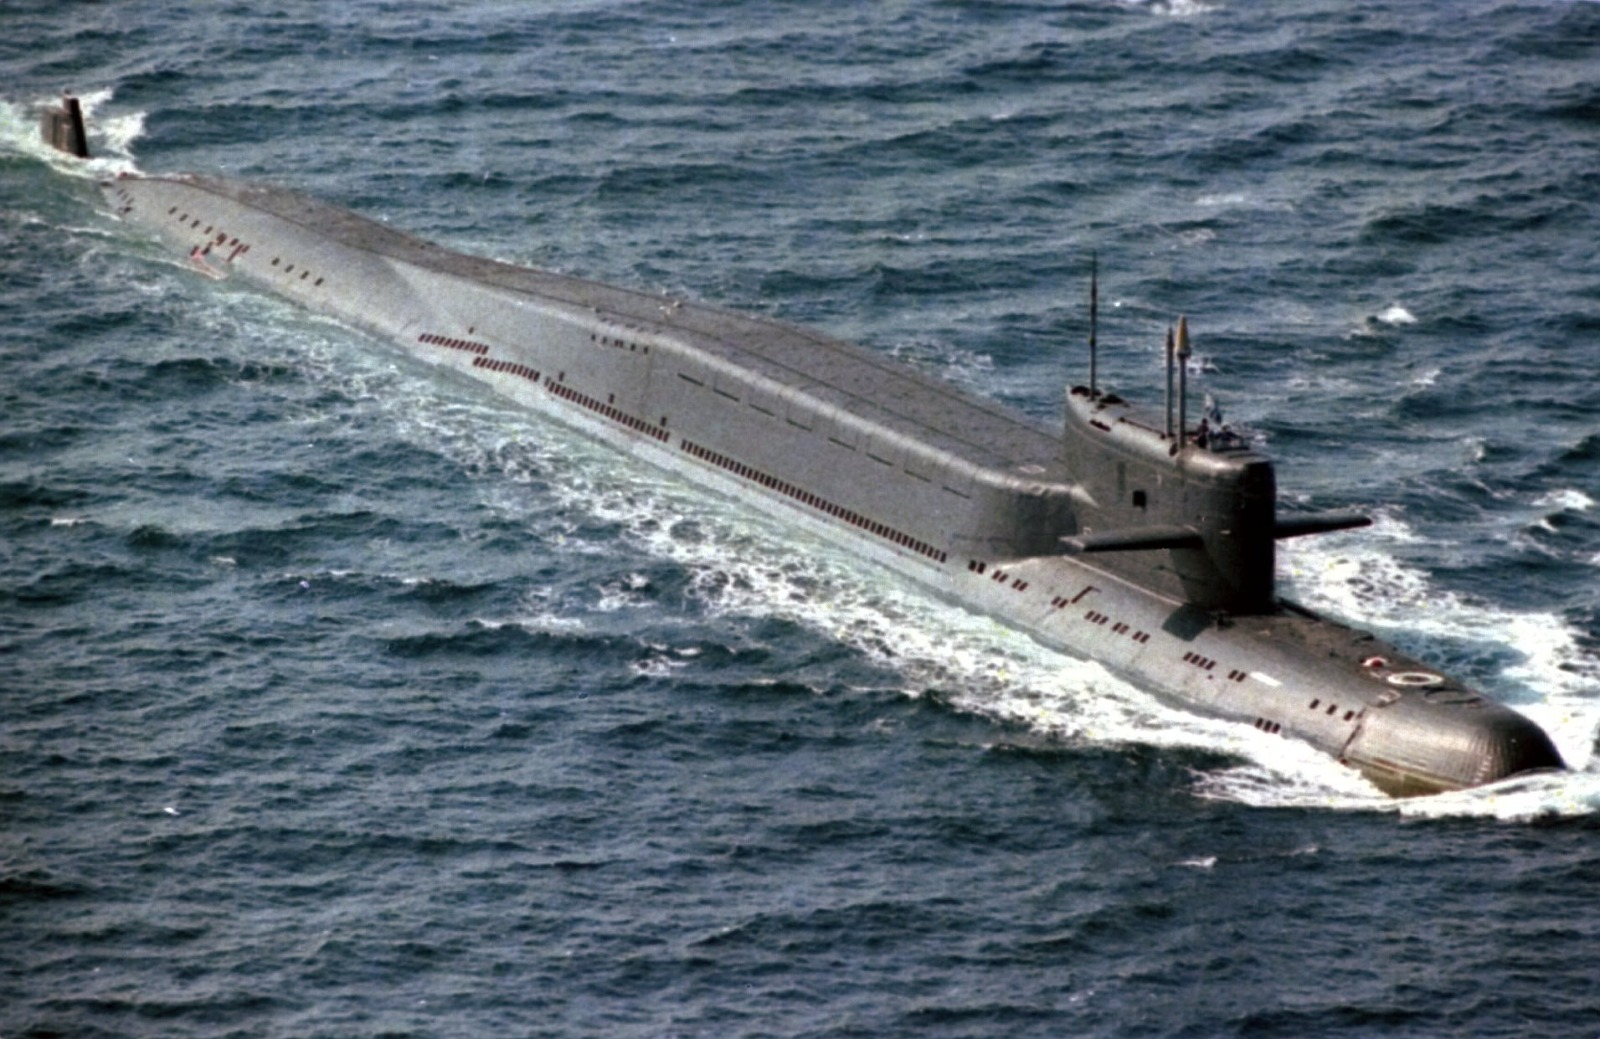 FACT: These 5 Super Submarines Could Kill Billions of People